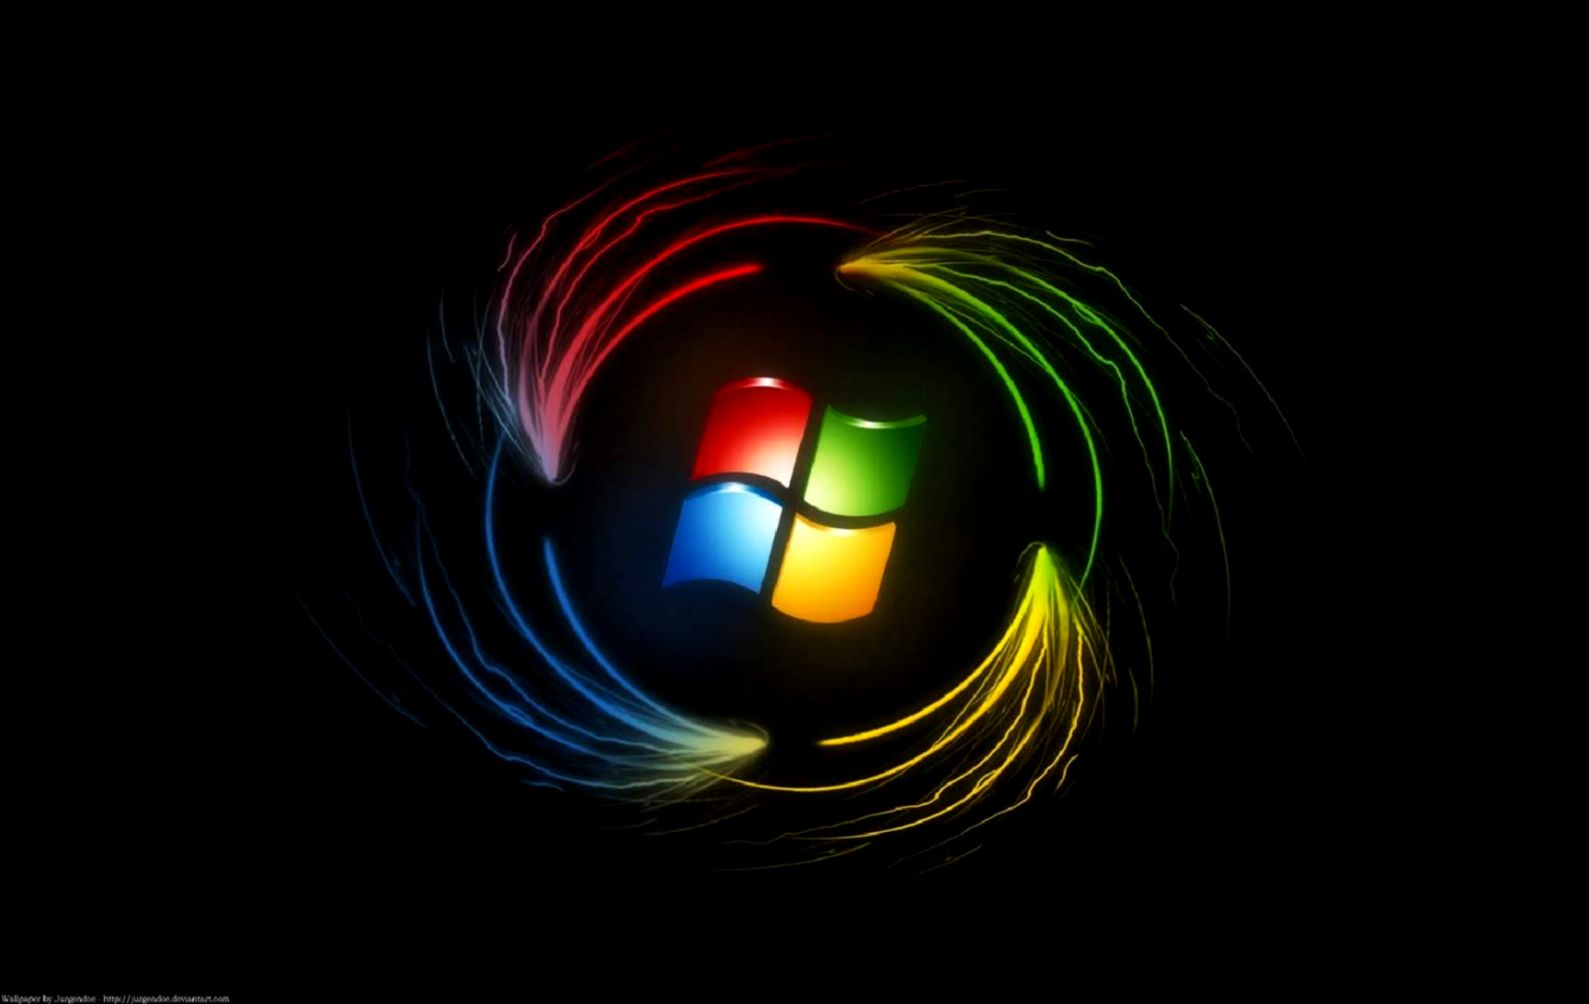 Microsoft wallpapers themes best background wallpaper - Microsoft wallpaper ...